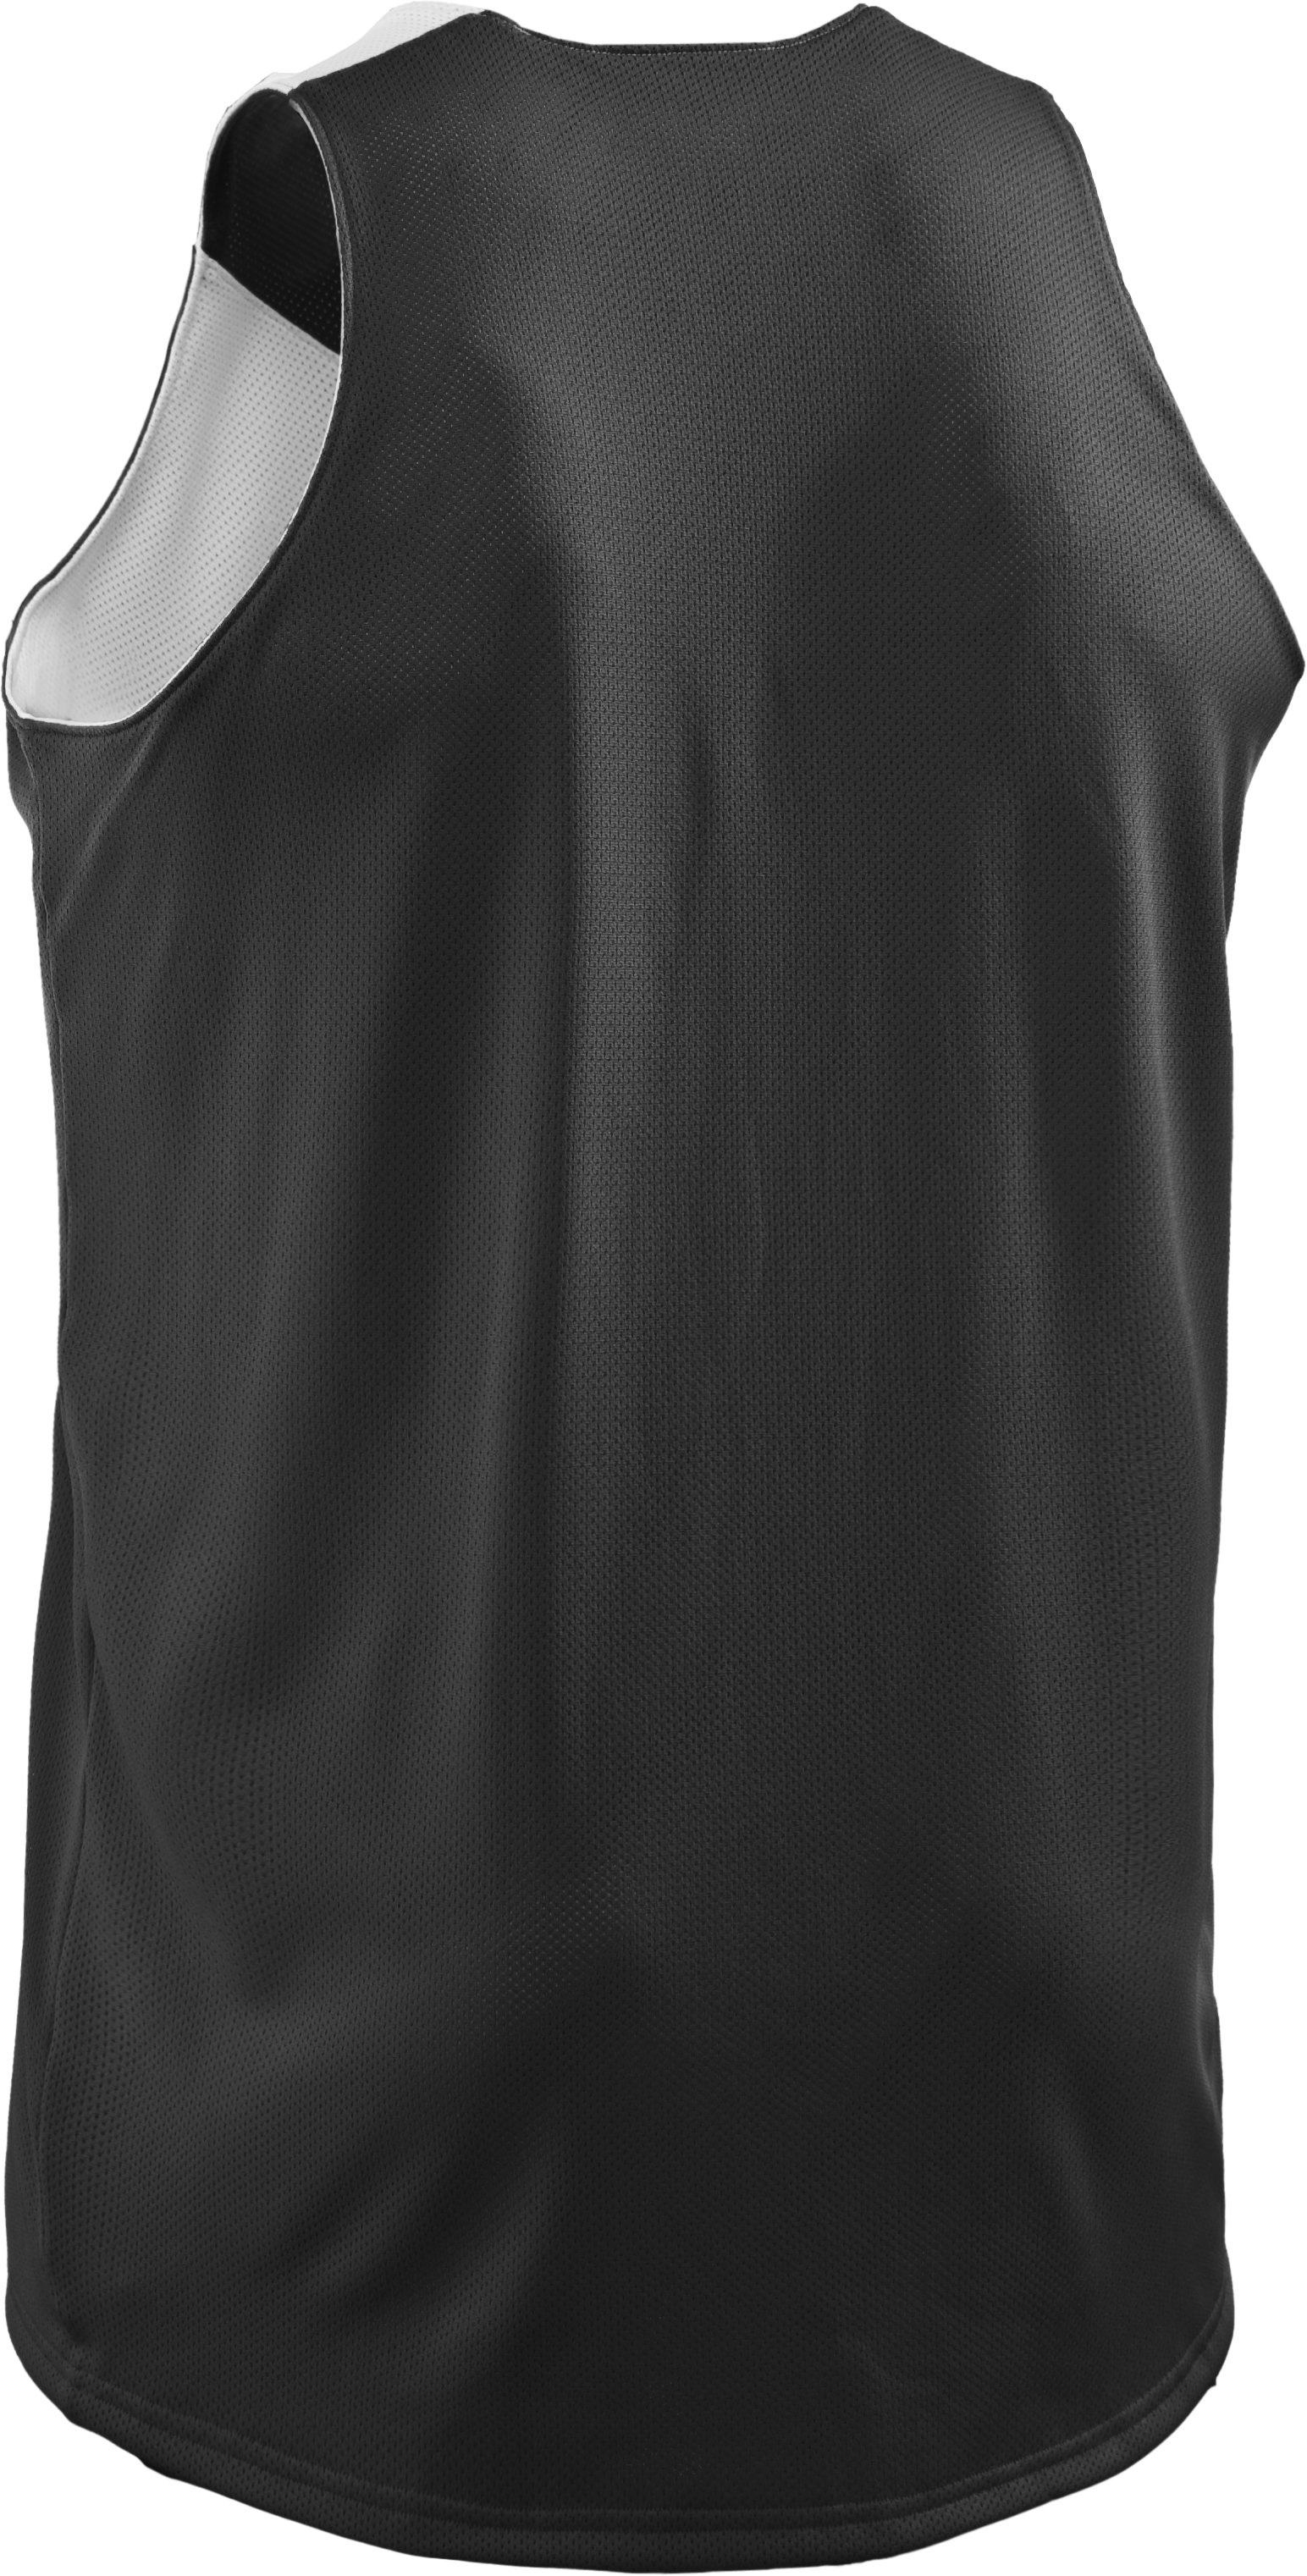 Men's Repeat Reversible Basketball Jersey, Black